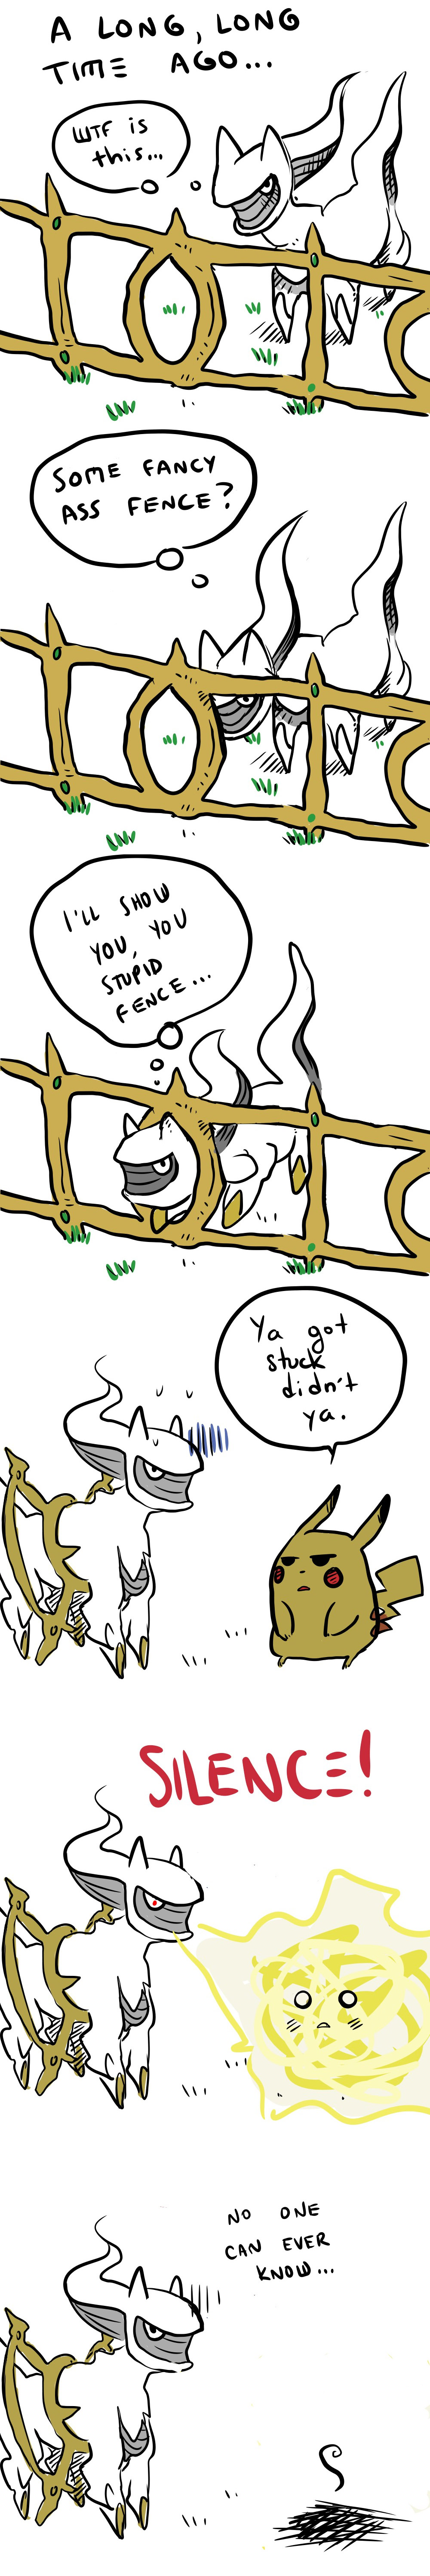 Arceus' Legendary Origin Story